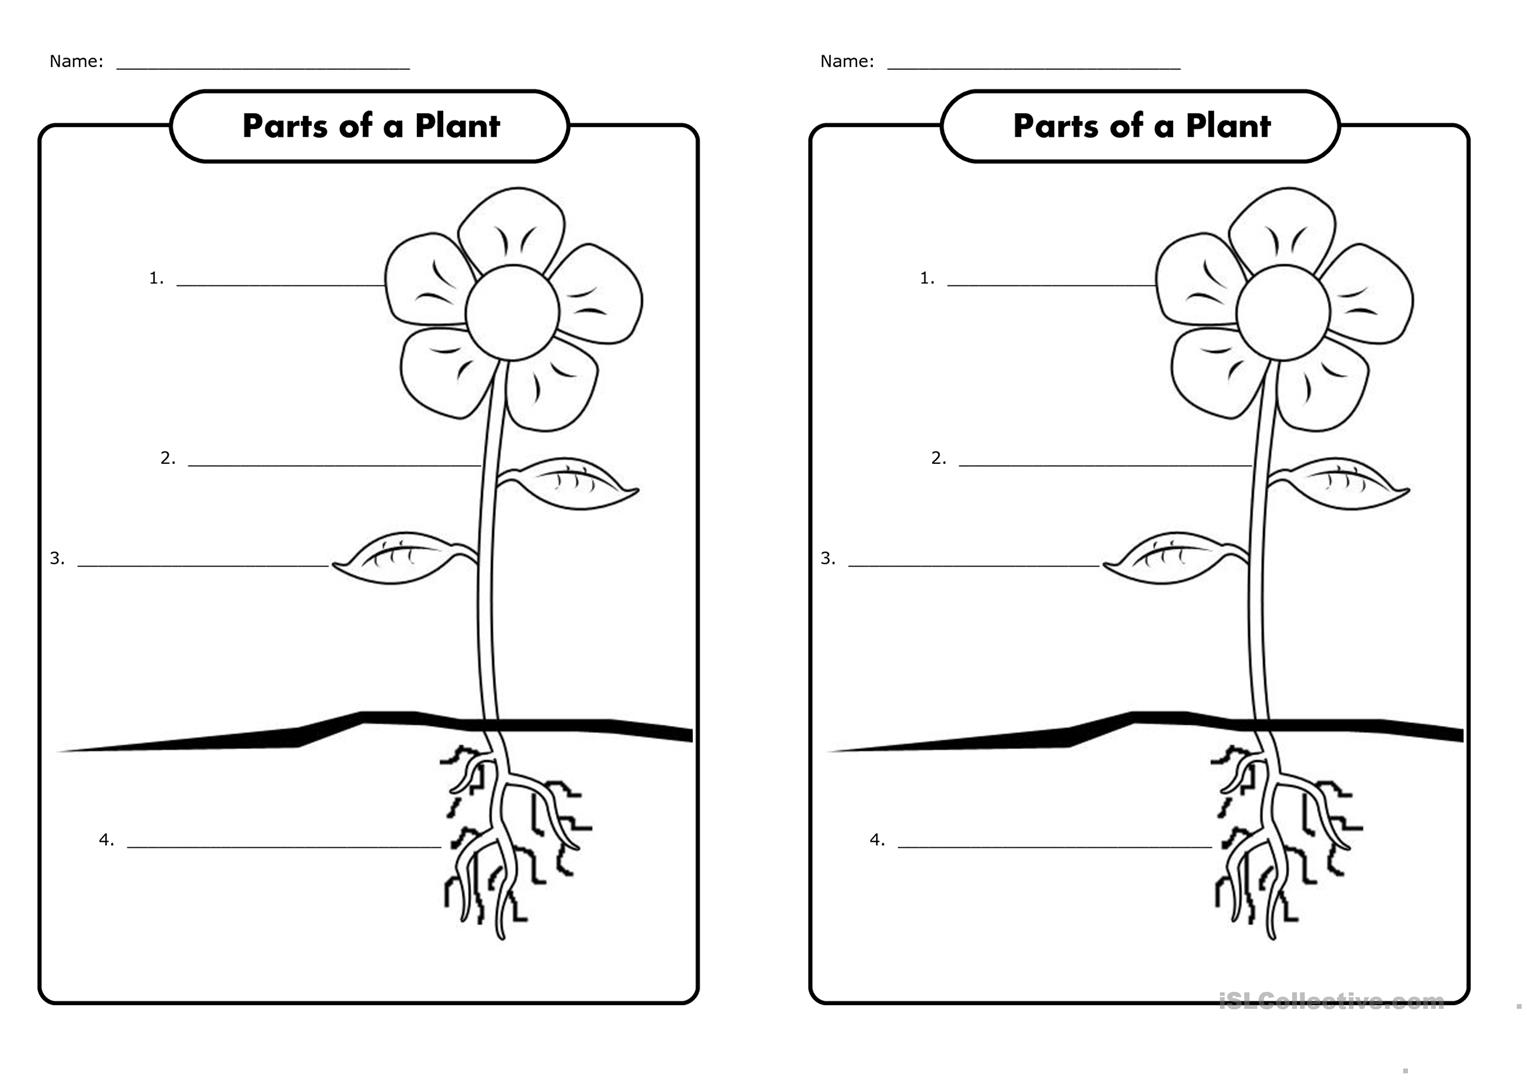 Flower Parts Worksheet Answers